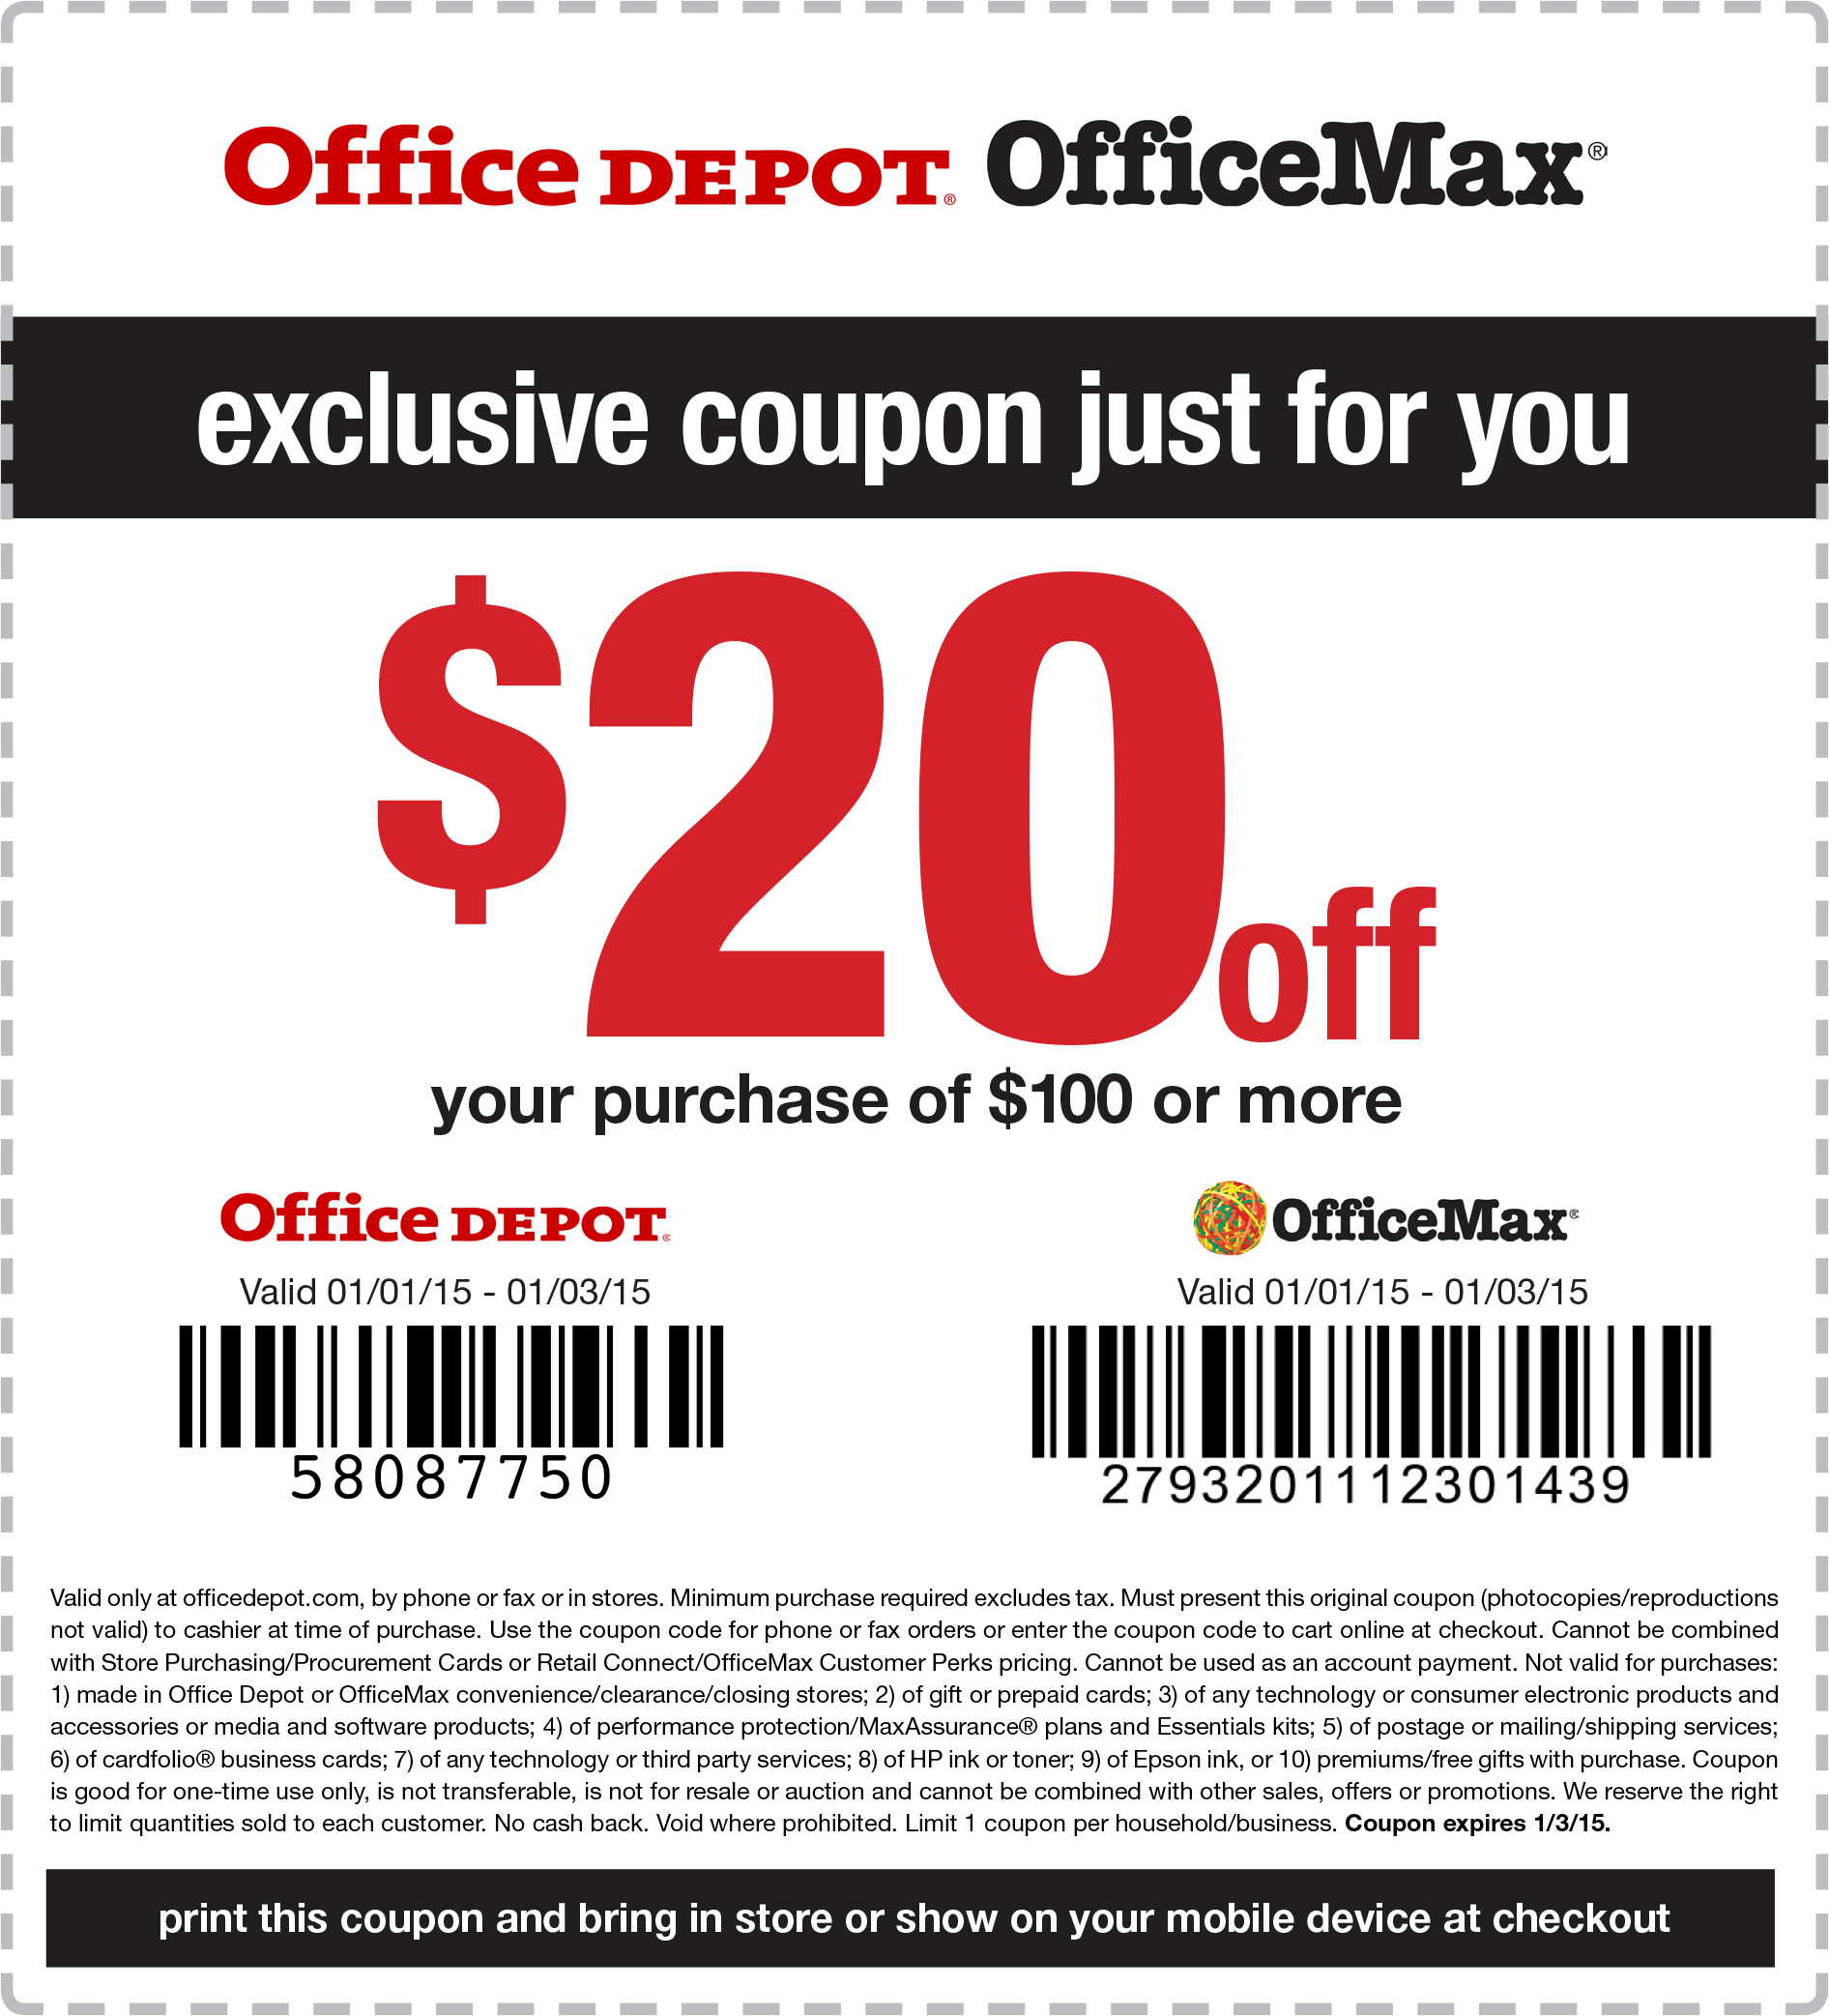 OfficeMax & Office Depot Coupon February 2017 $20 off $100 at Office Depot & OfficeMax, or online via promo code 58087750